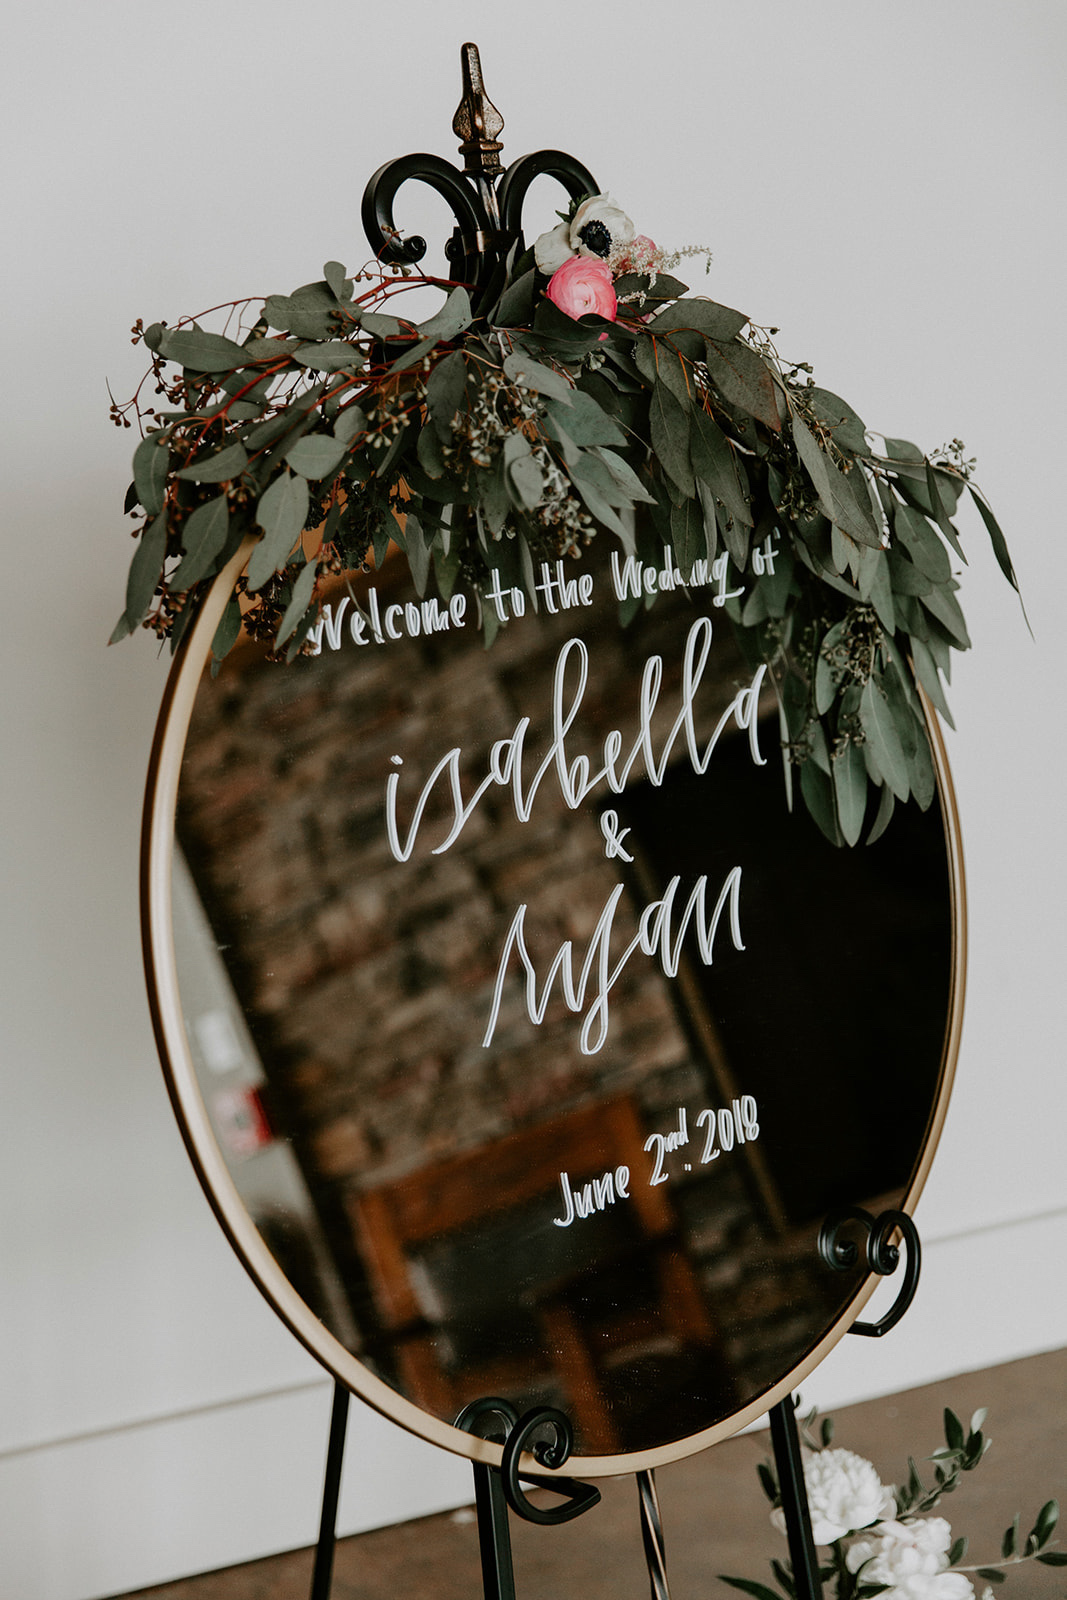 pear_tree_estate_wedding_champaign_il_wright_photographs_smith_0755.jpg